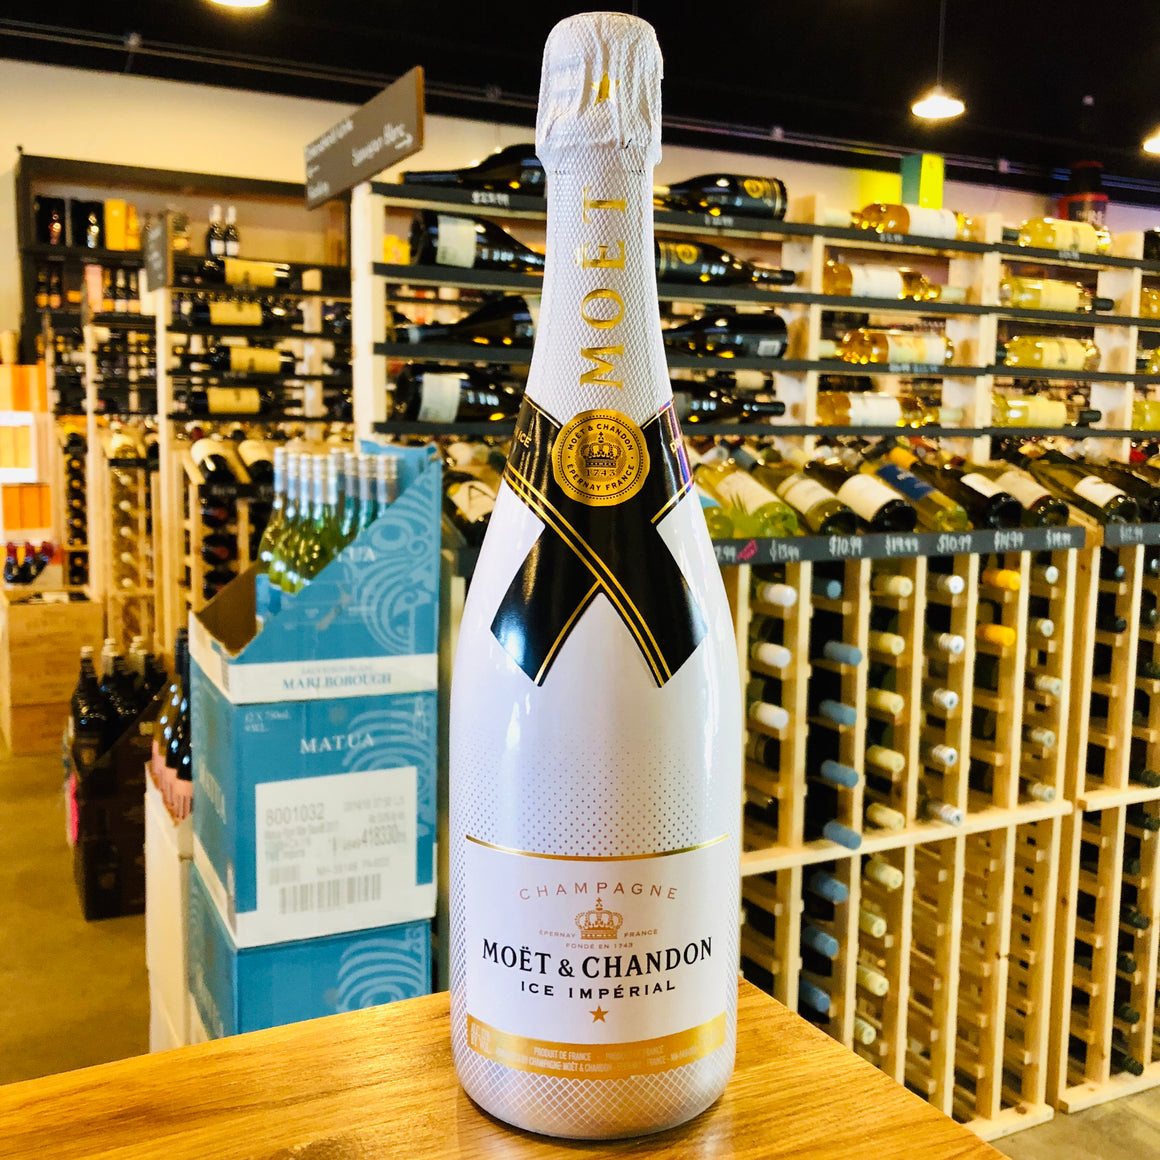 MOET & CHANDON ICE IMPERIAL CHAMPAGNE 750ML